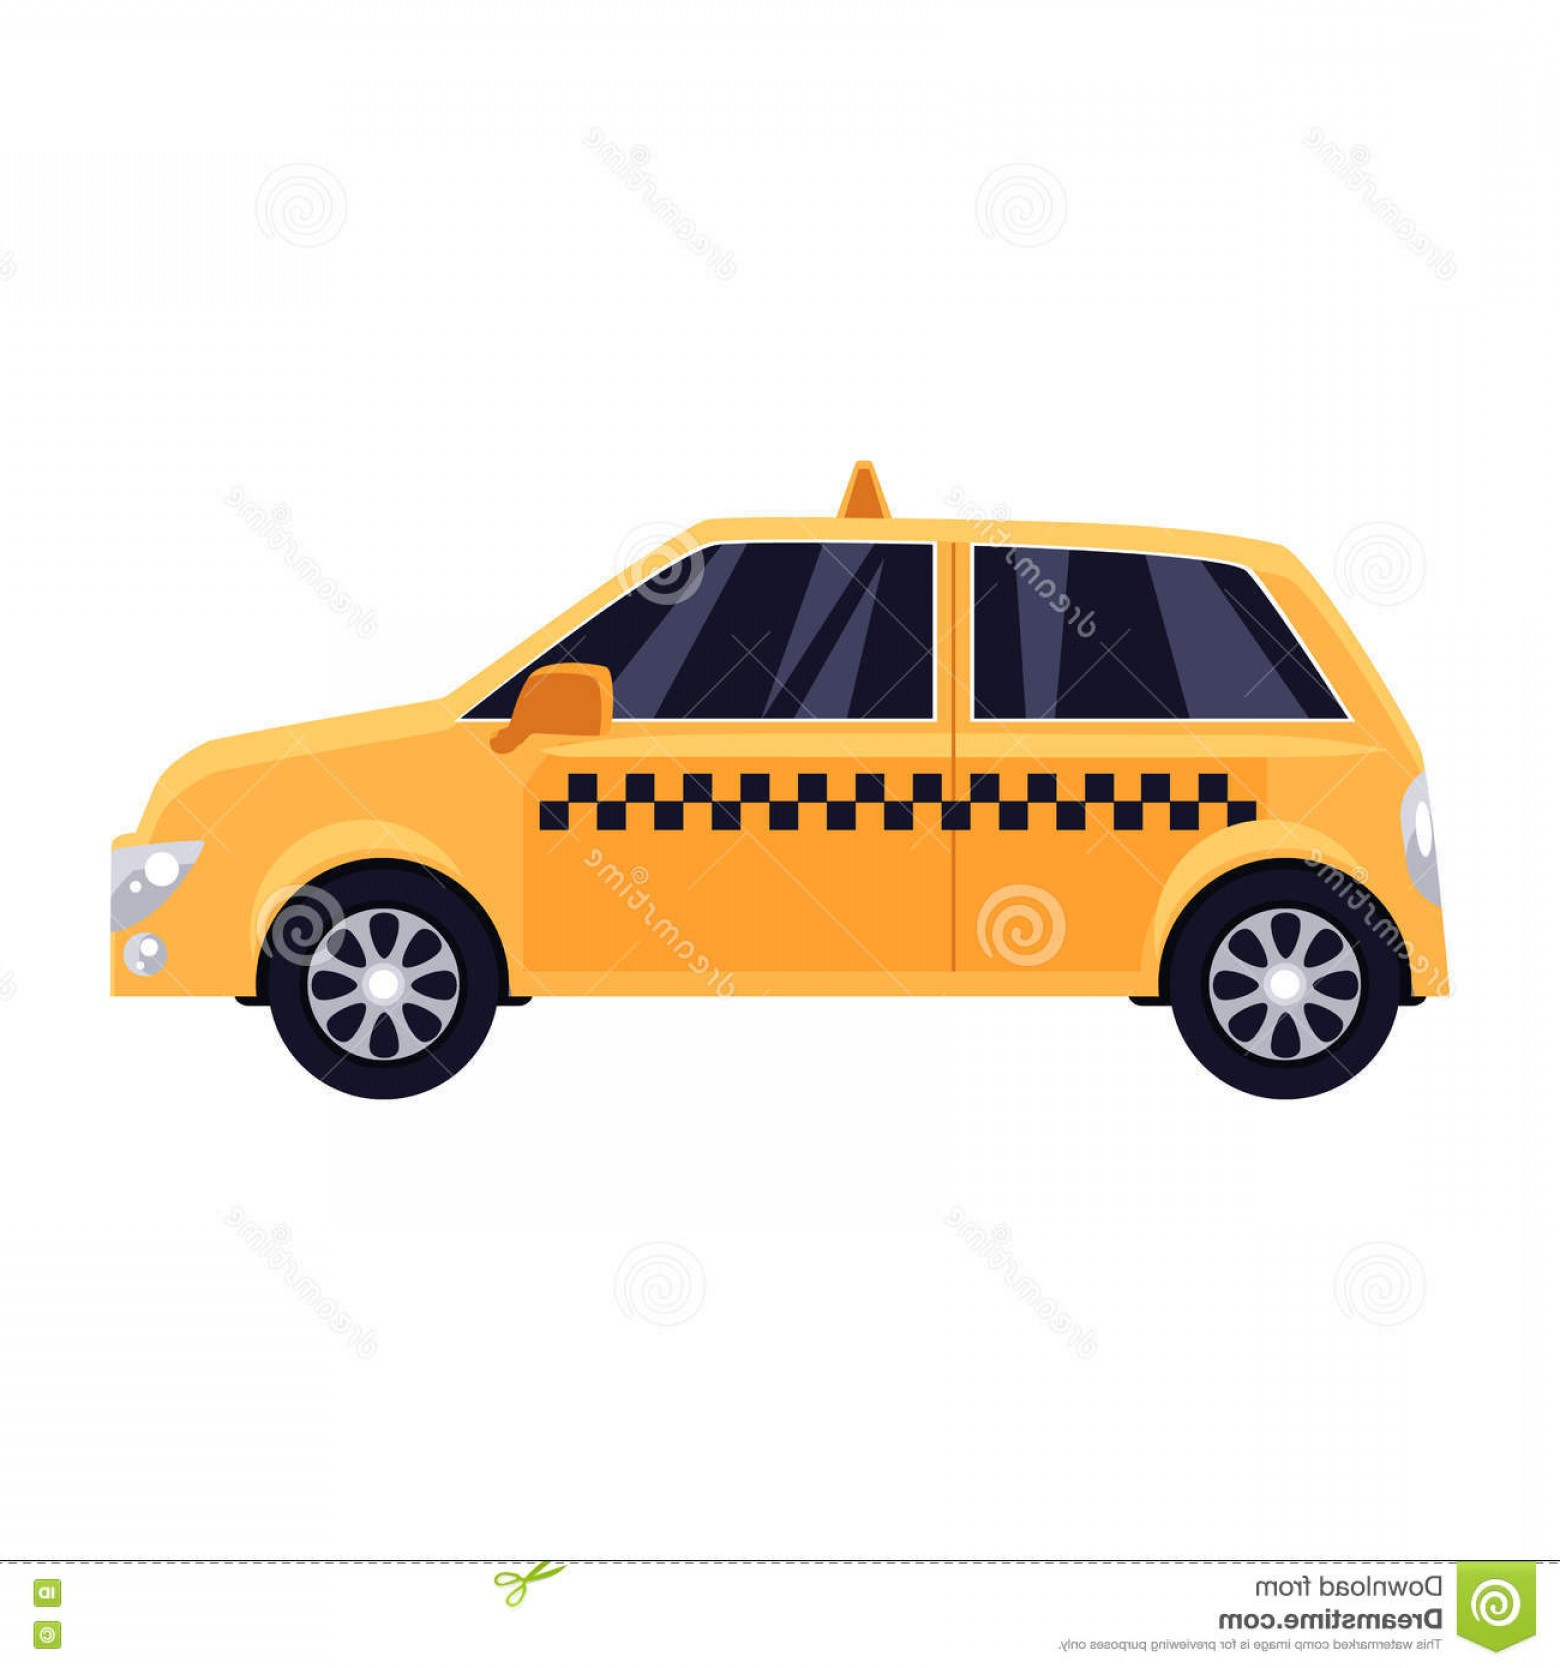 Taxi Checkers Vector: Stock Illustration Traditional Yellow Taxi Checker Pattern Cartoon Vector Illustration Isolated White Background Urban Image